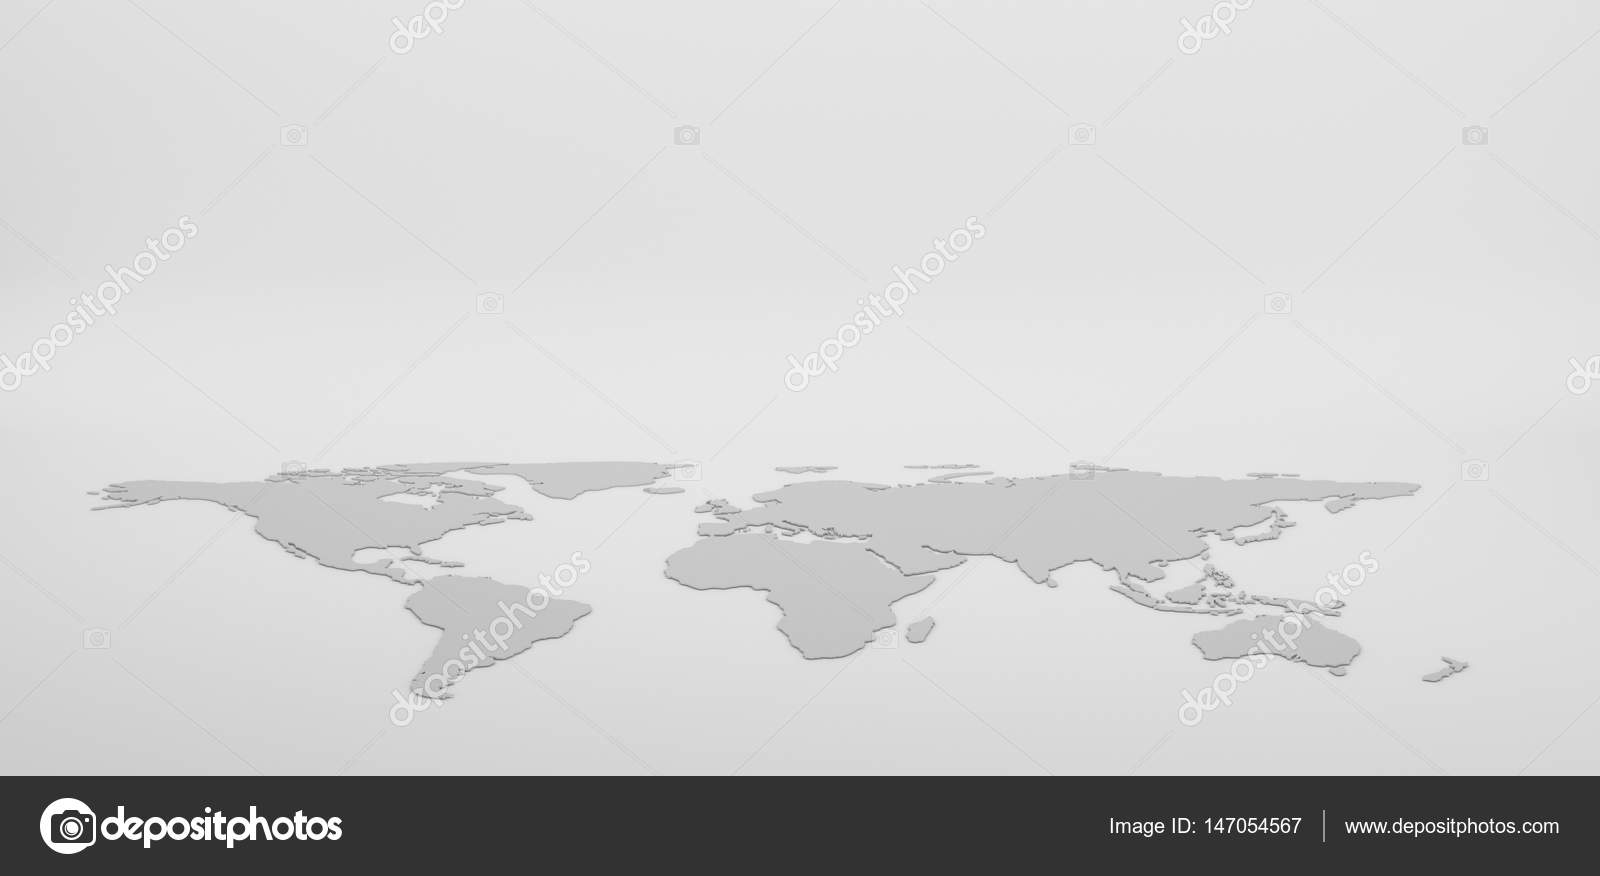 Blank grey world map isolated on white background infographics blank grey world map isolated on white background infographics stock photo gumiabroncs Image collections